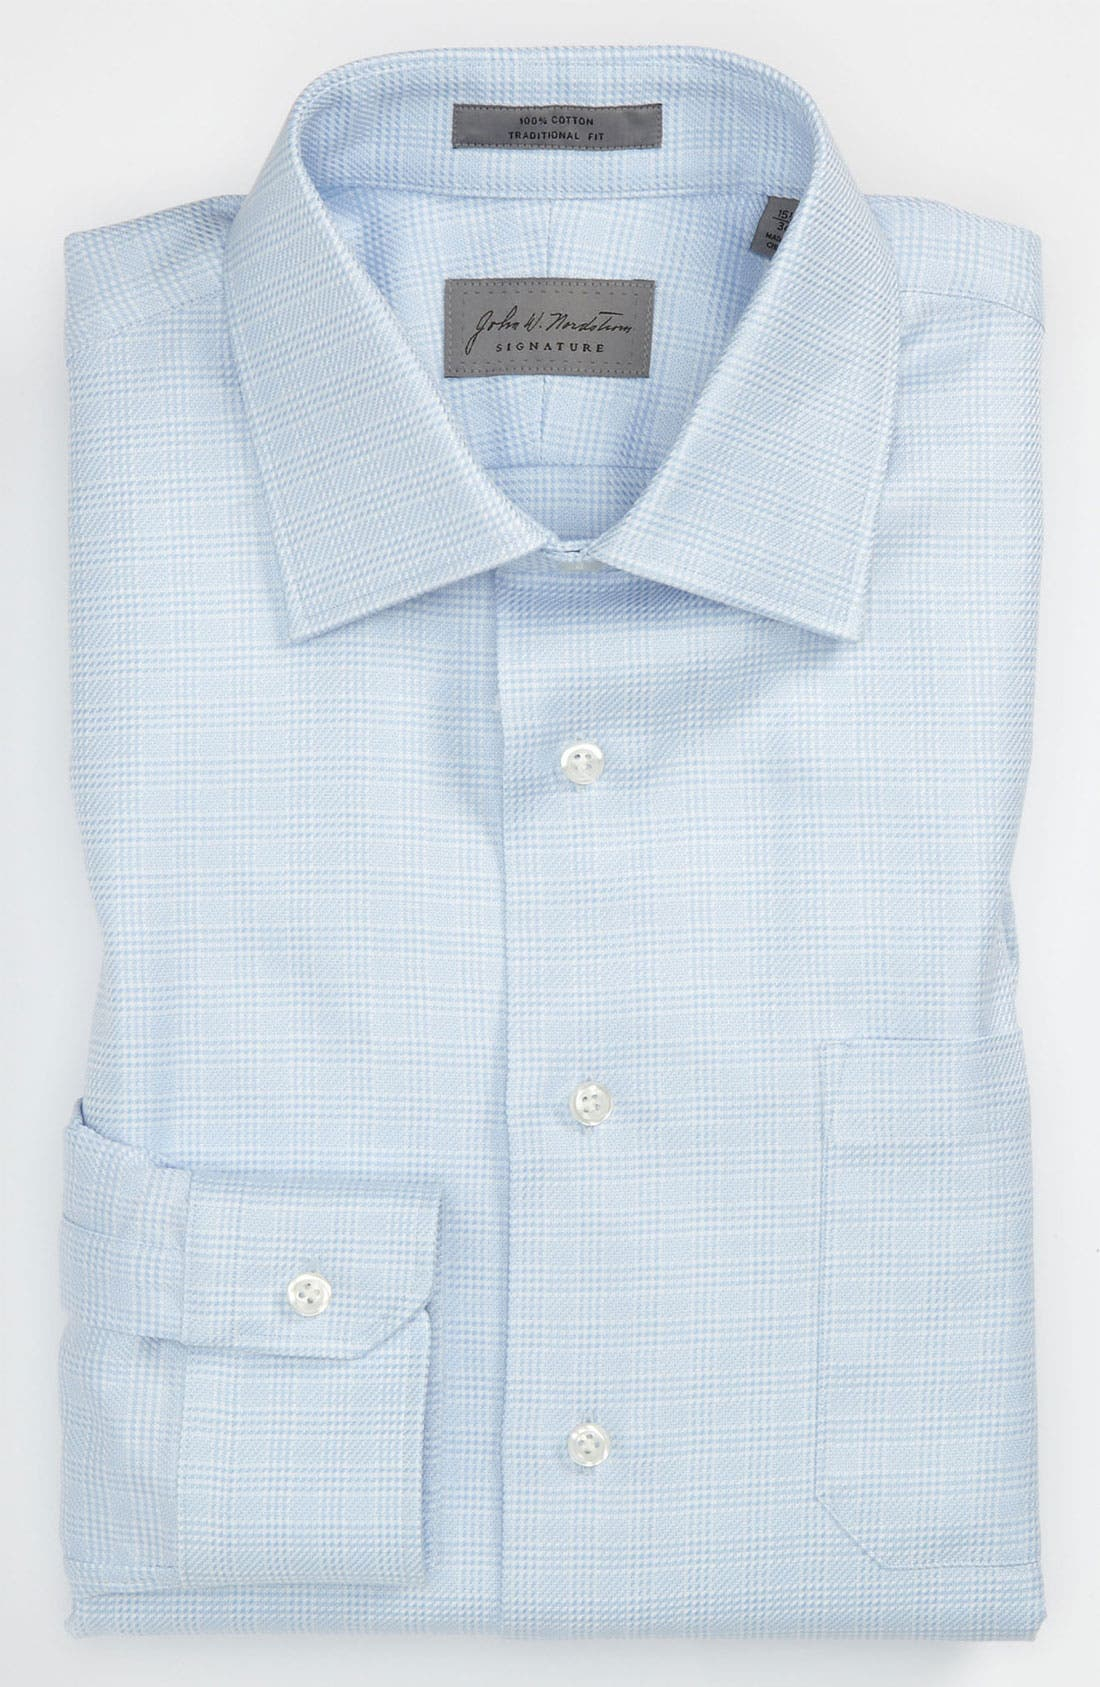 Main Image - John W. Nordstrom® Signature Traditional Fit Dress Shirt